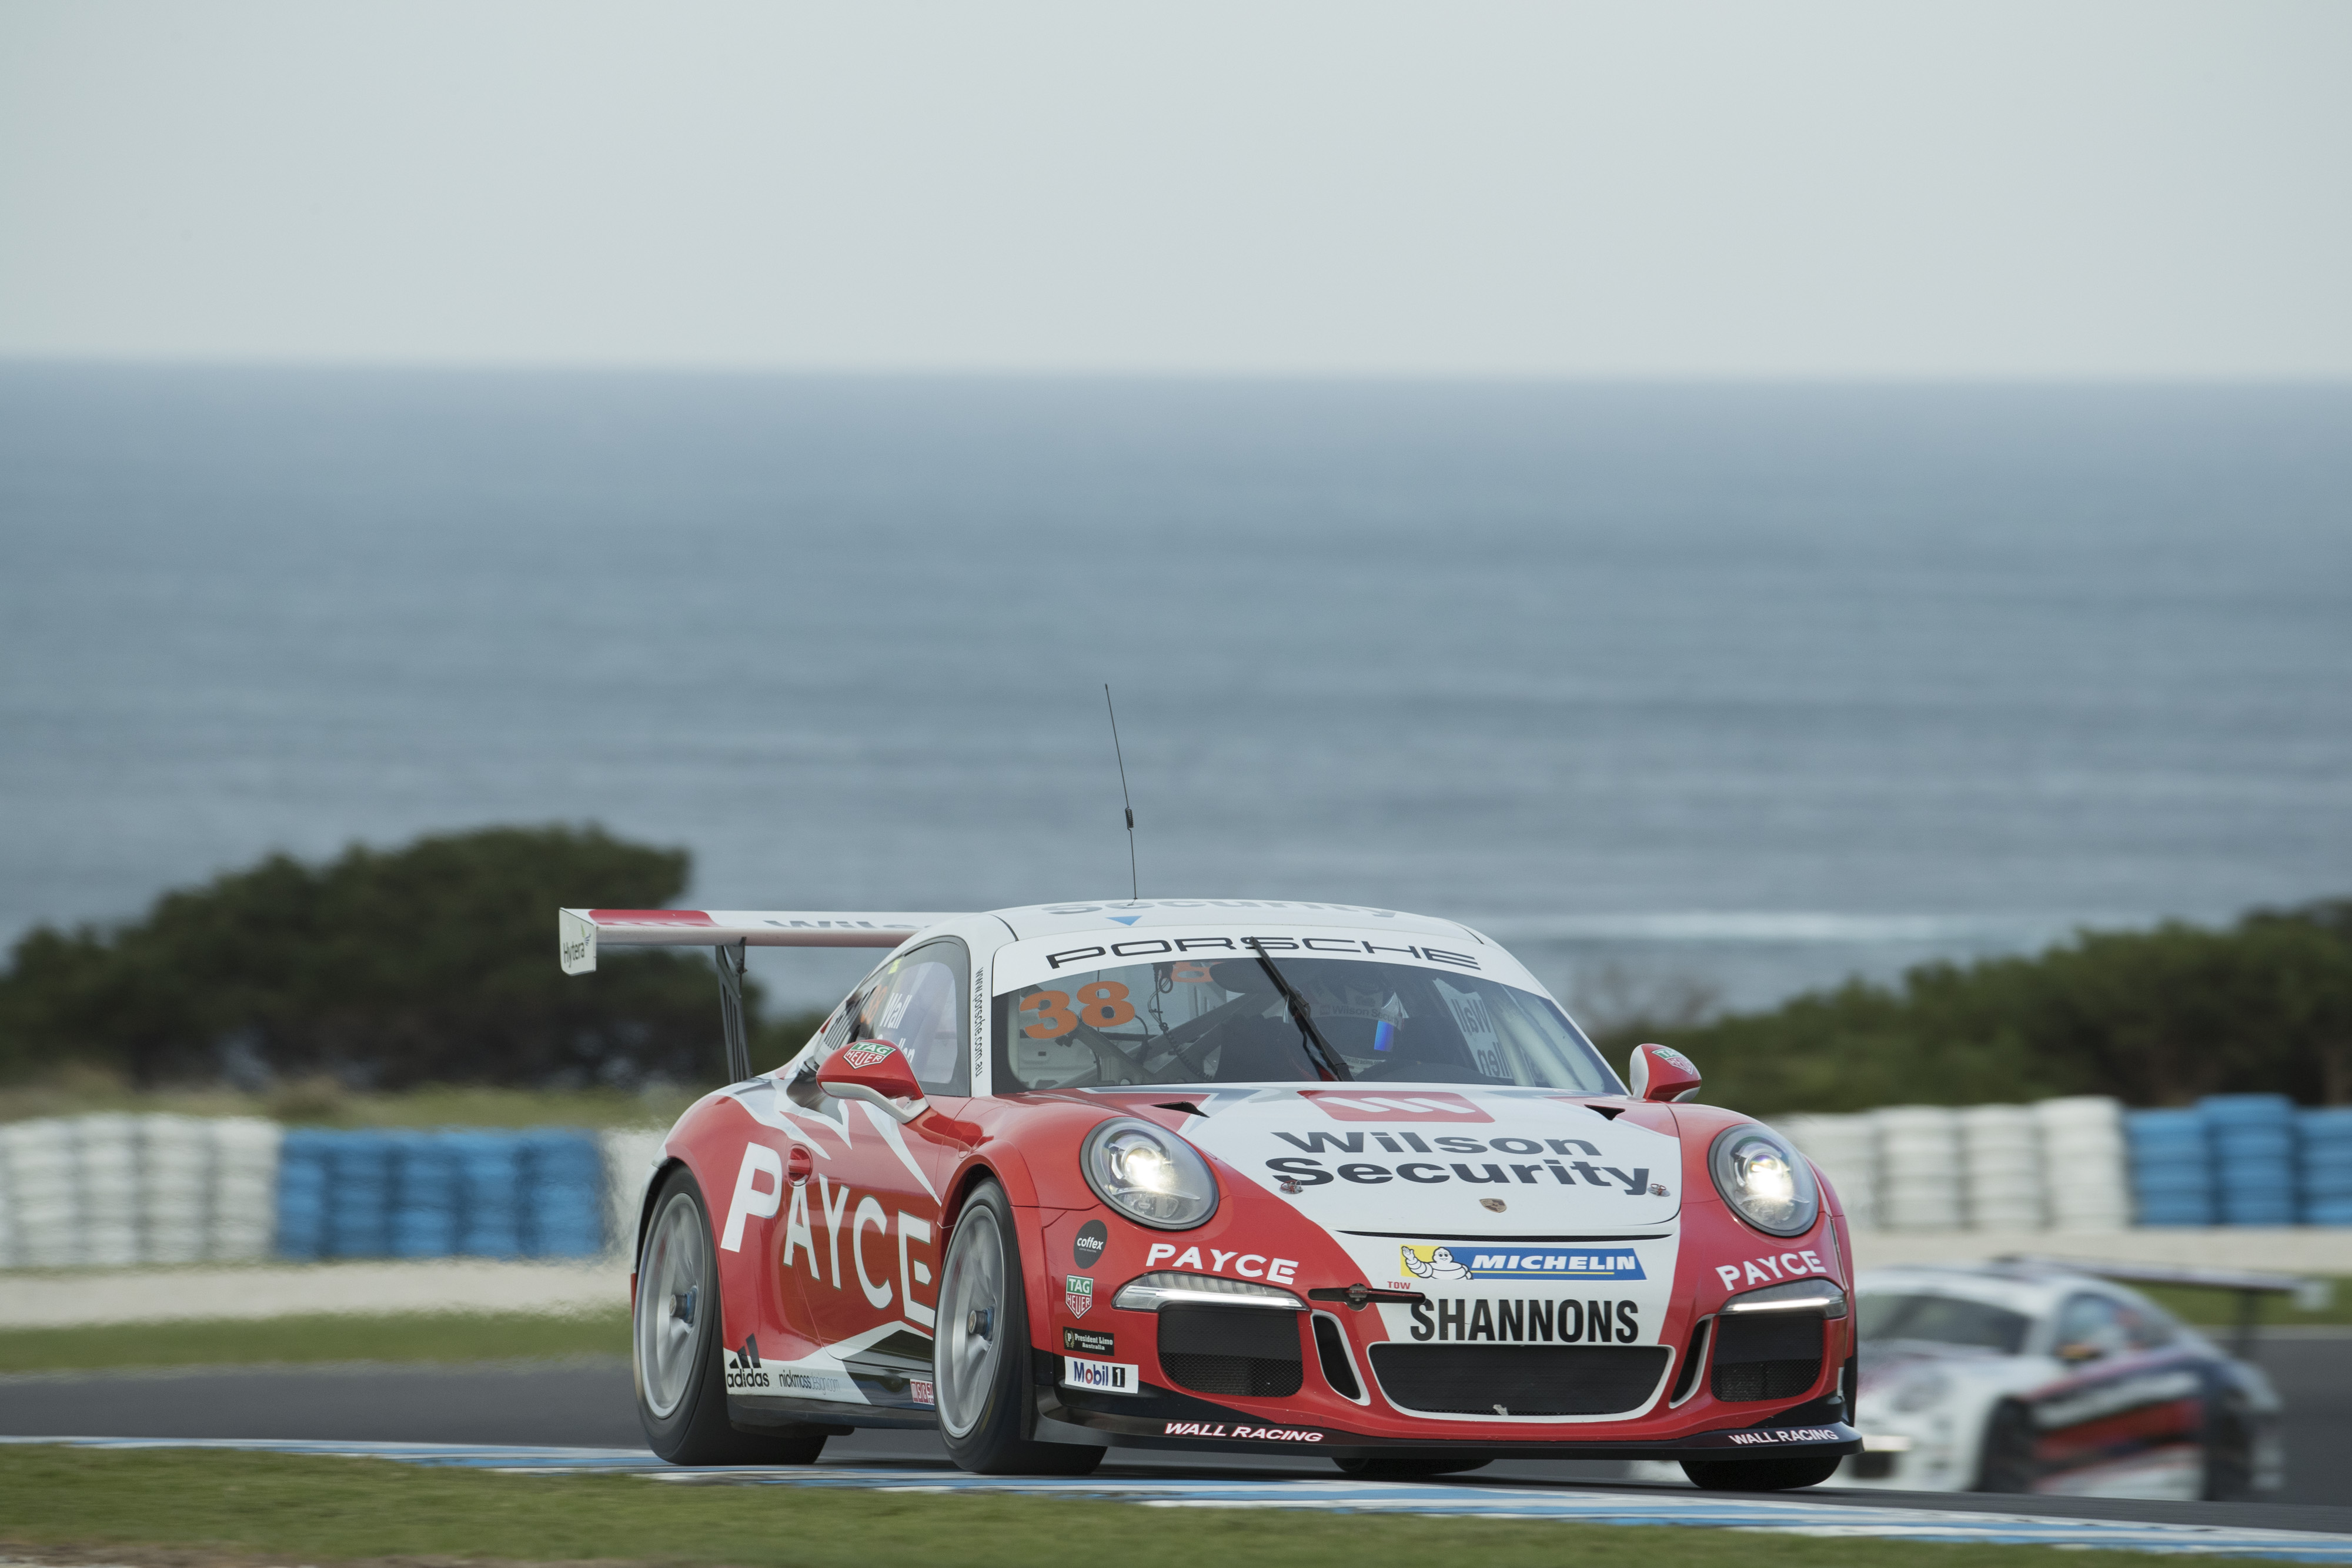 p38-Wall-CarreraCup-R3-2017-01474